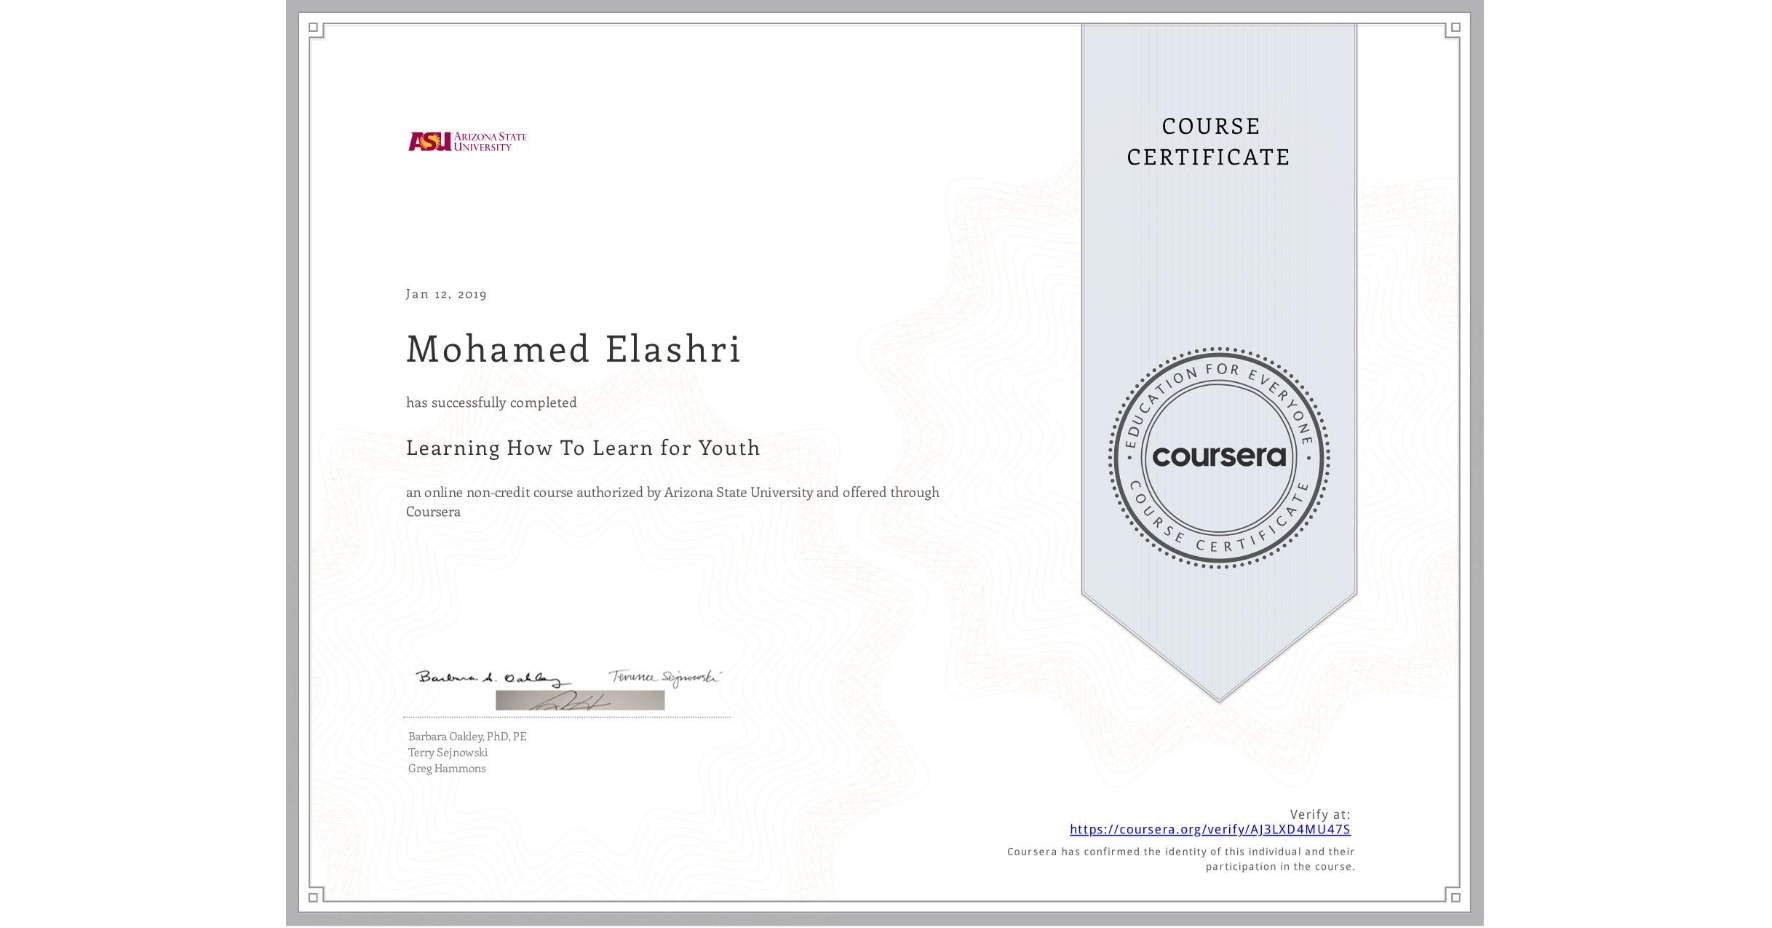 View certificate for Mohamed Elashri, Learning How To Learn for Youth, an online non-credit course authorized by Arizona State University and offered through Coursera